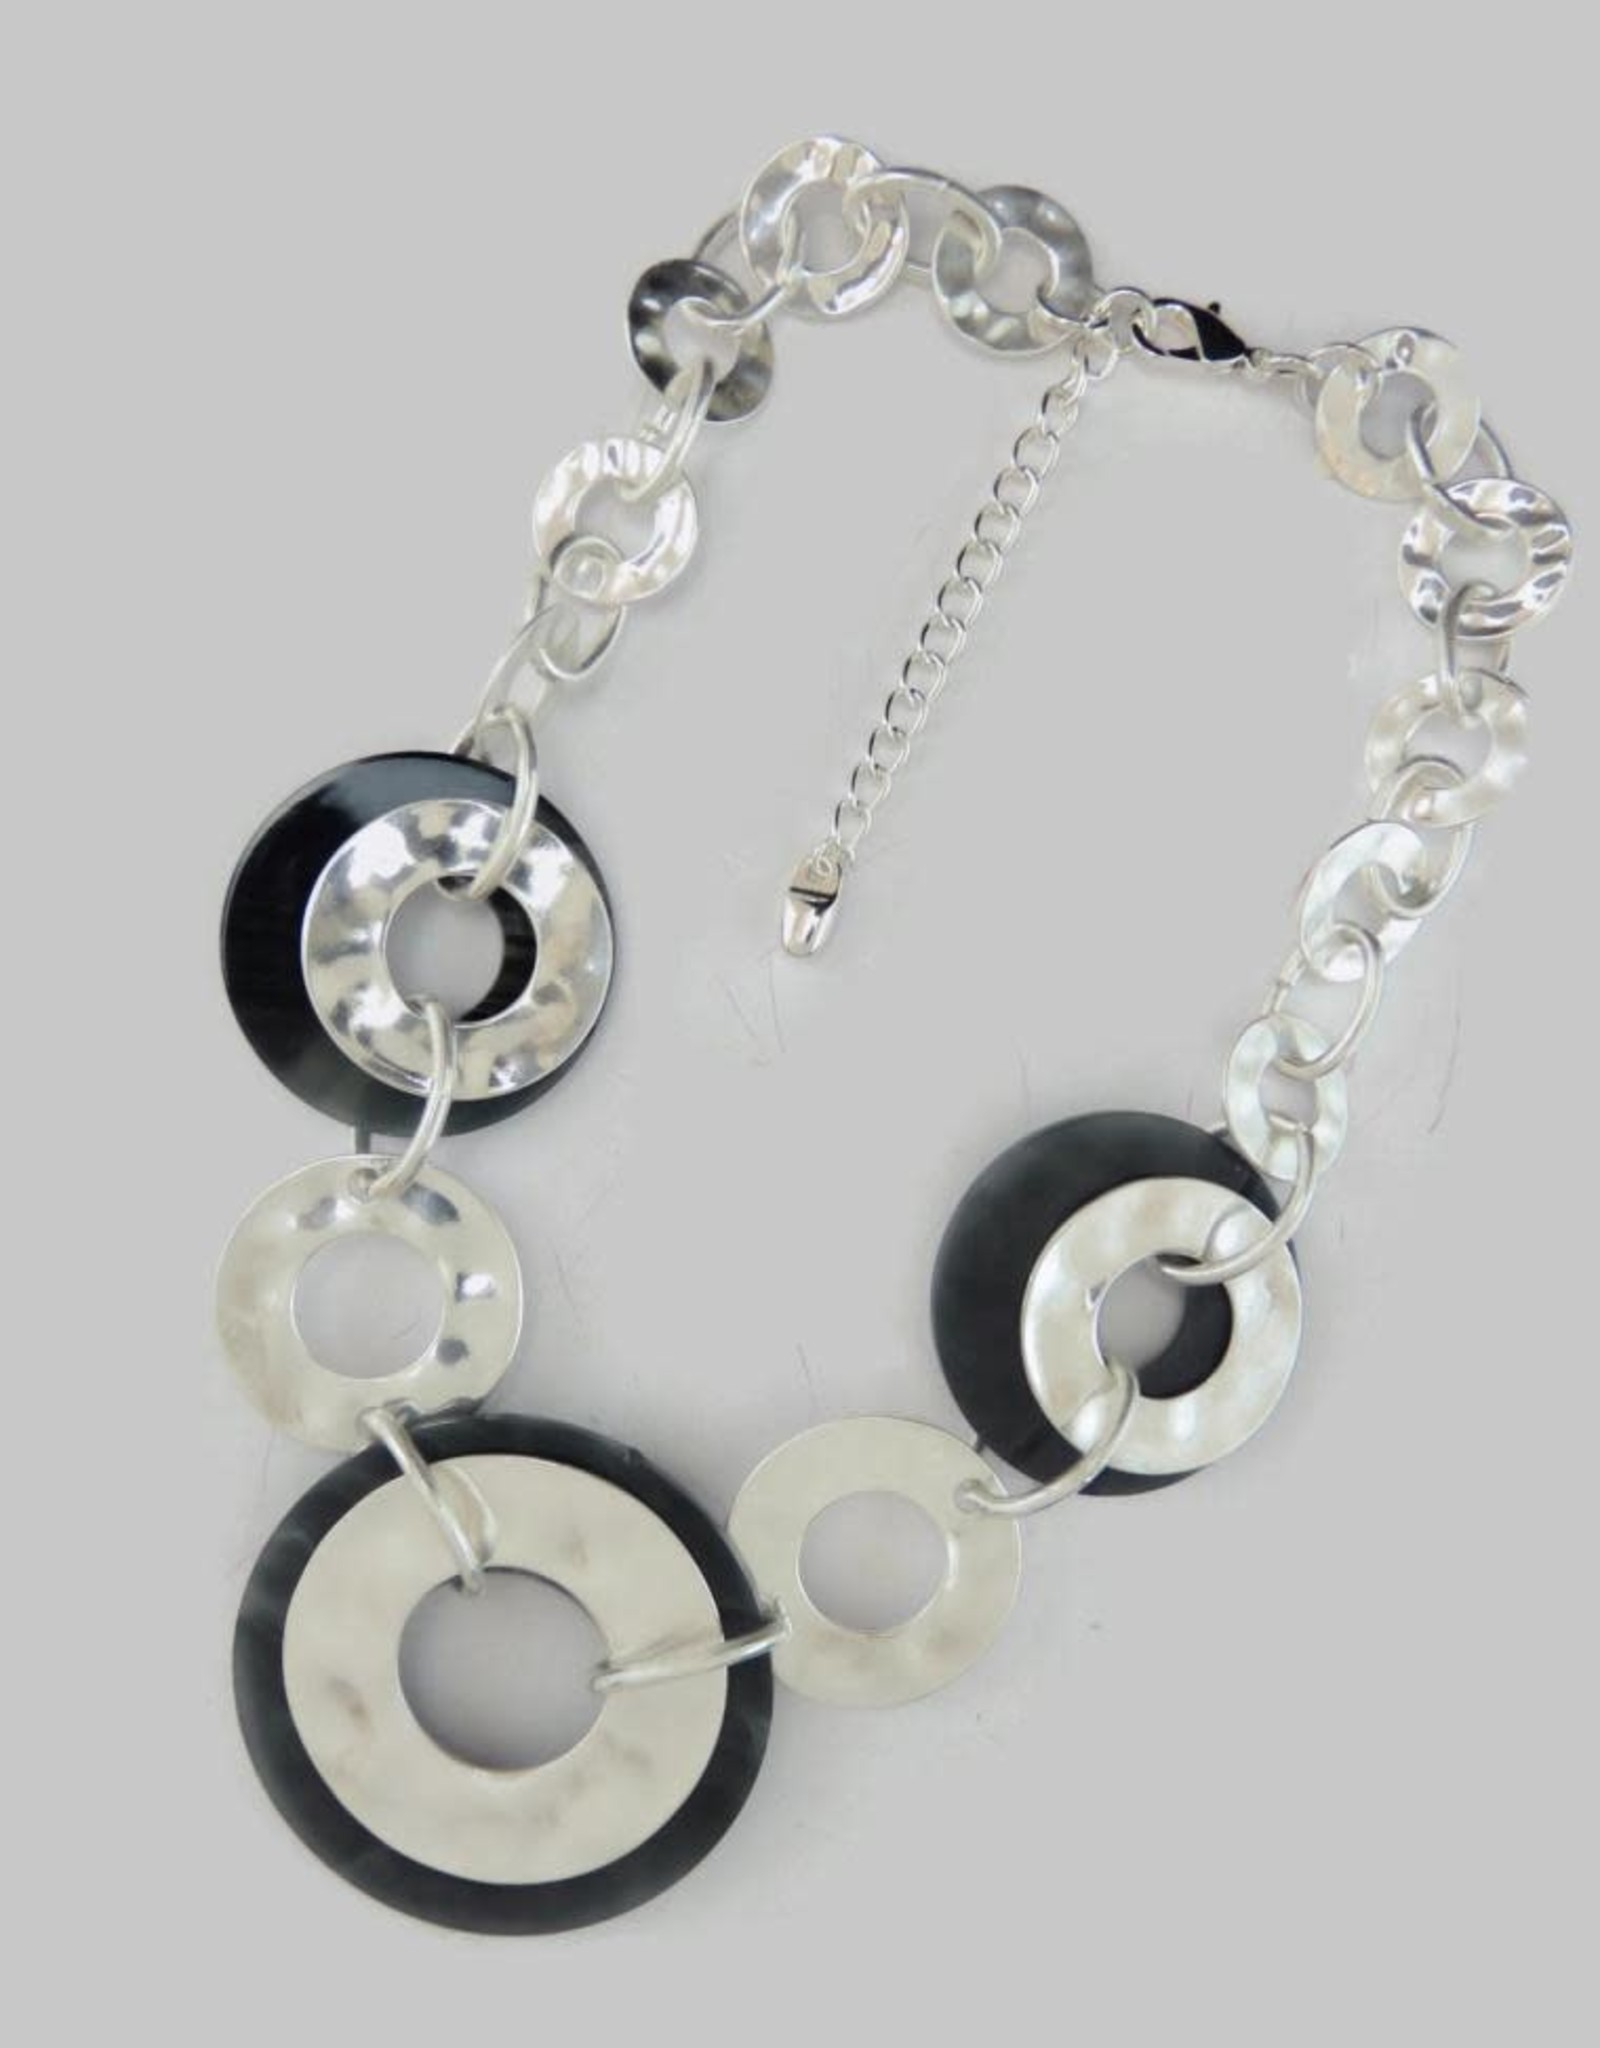 Hammered Silver Acrylic Statement Necklace